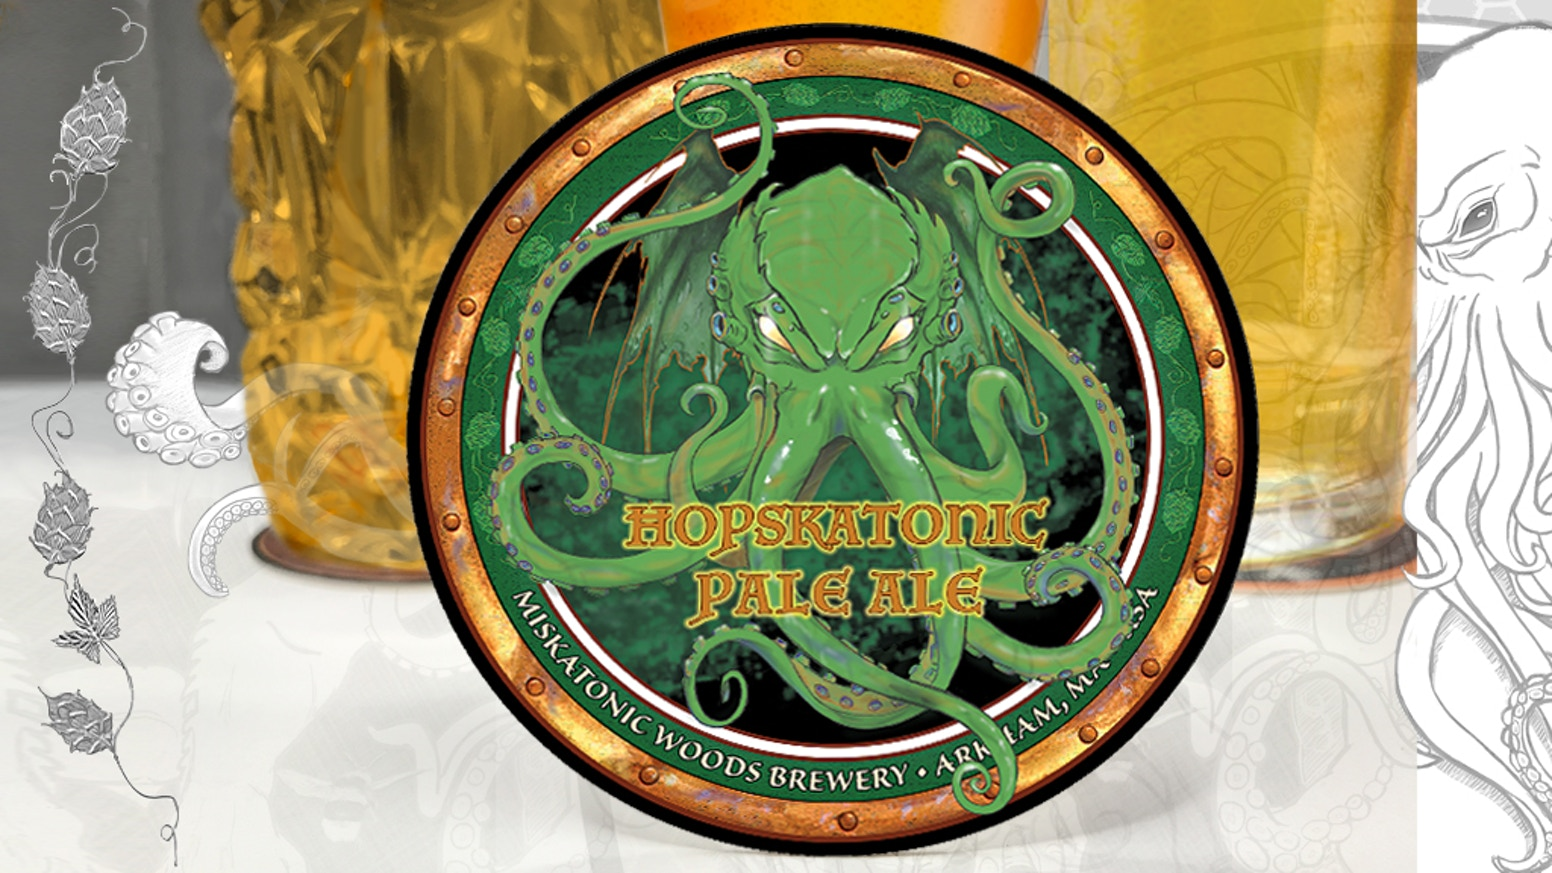 Cthulhu Art Drink Coaster 2. Inspired by H.P. Lovecraft and the Ancient Ones. $1 each. Made in the USA